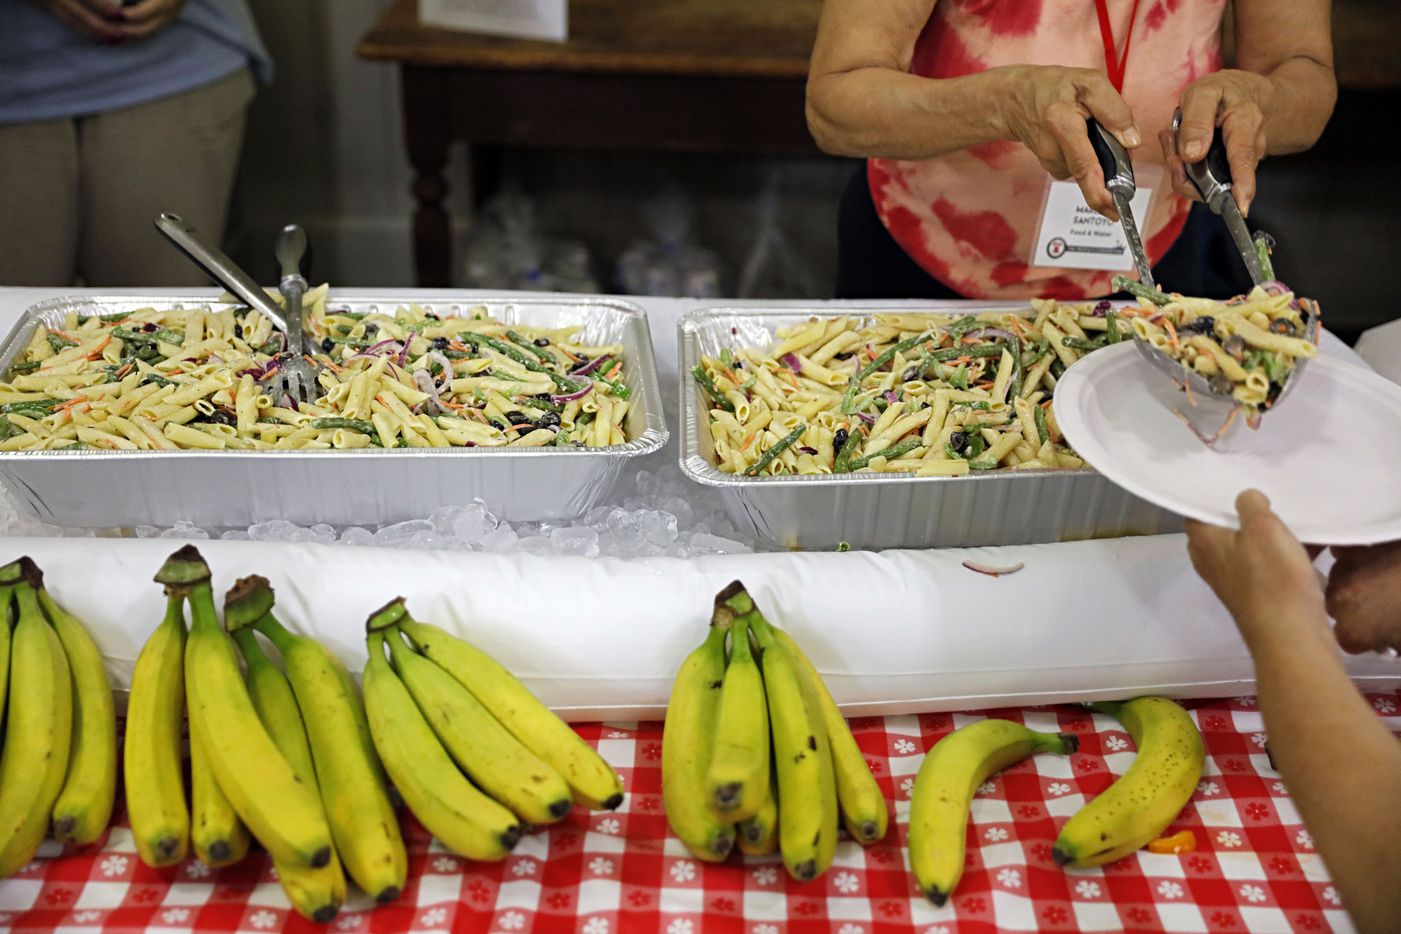 Pasta salad and bananas were offered to People's Convention attendees Saturday.